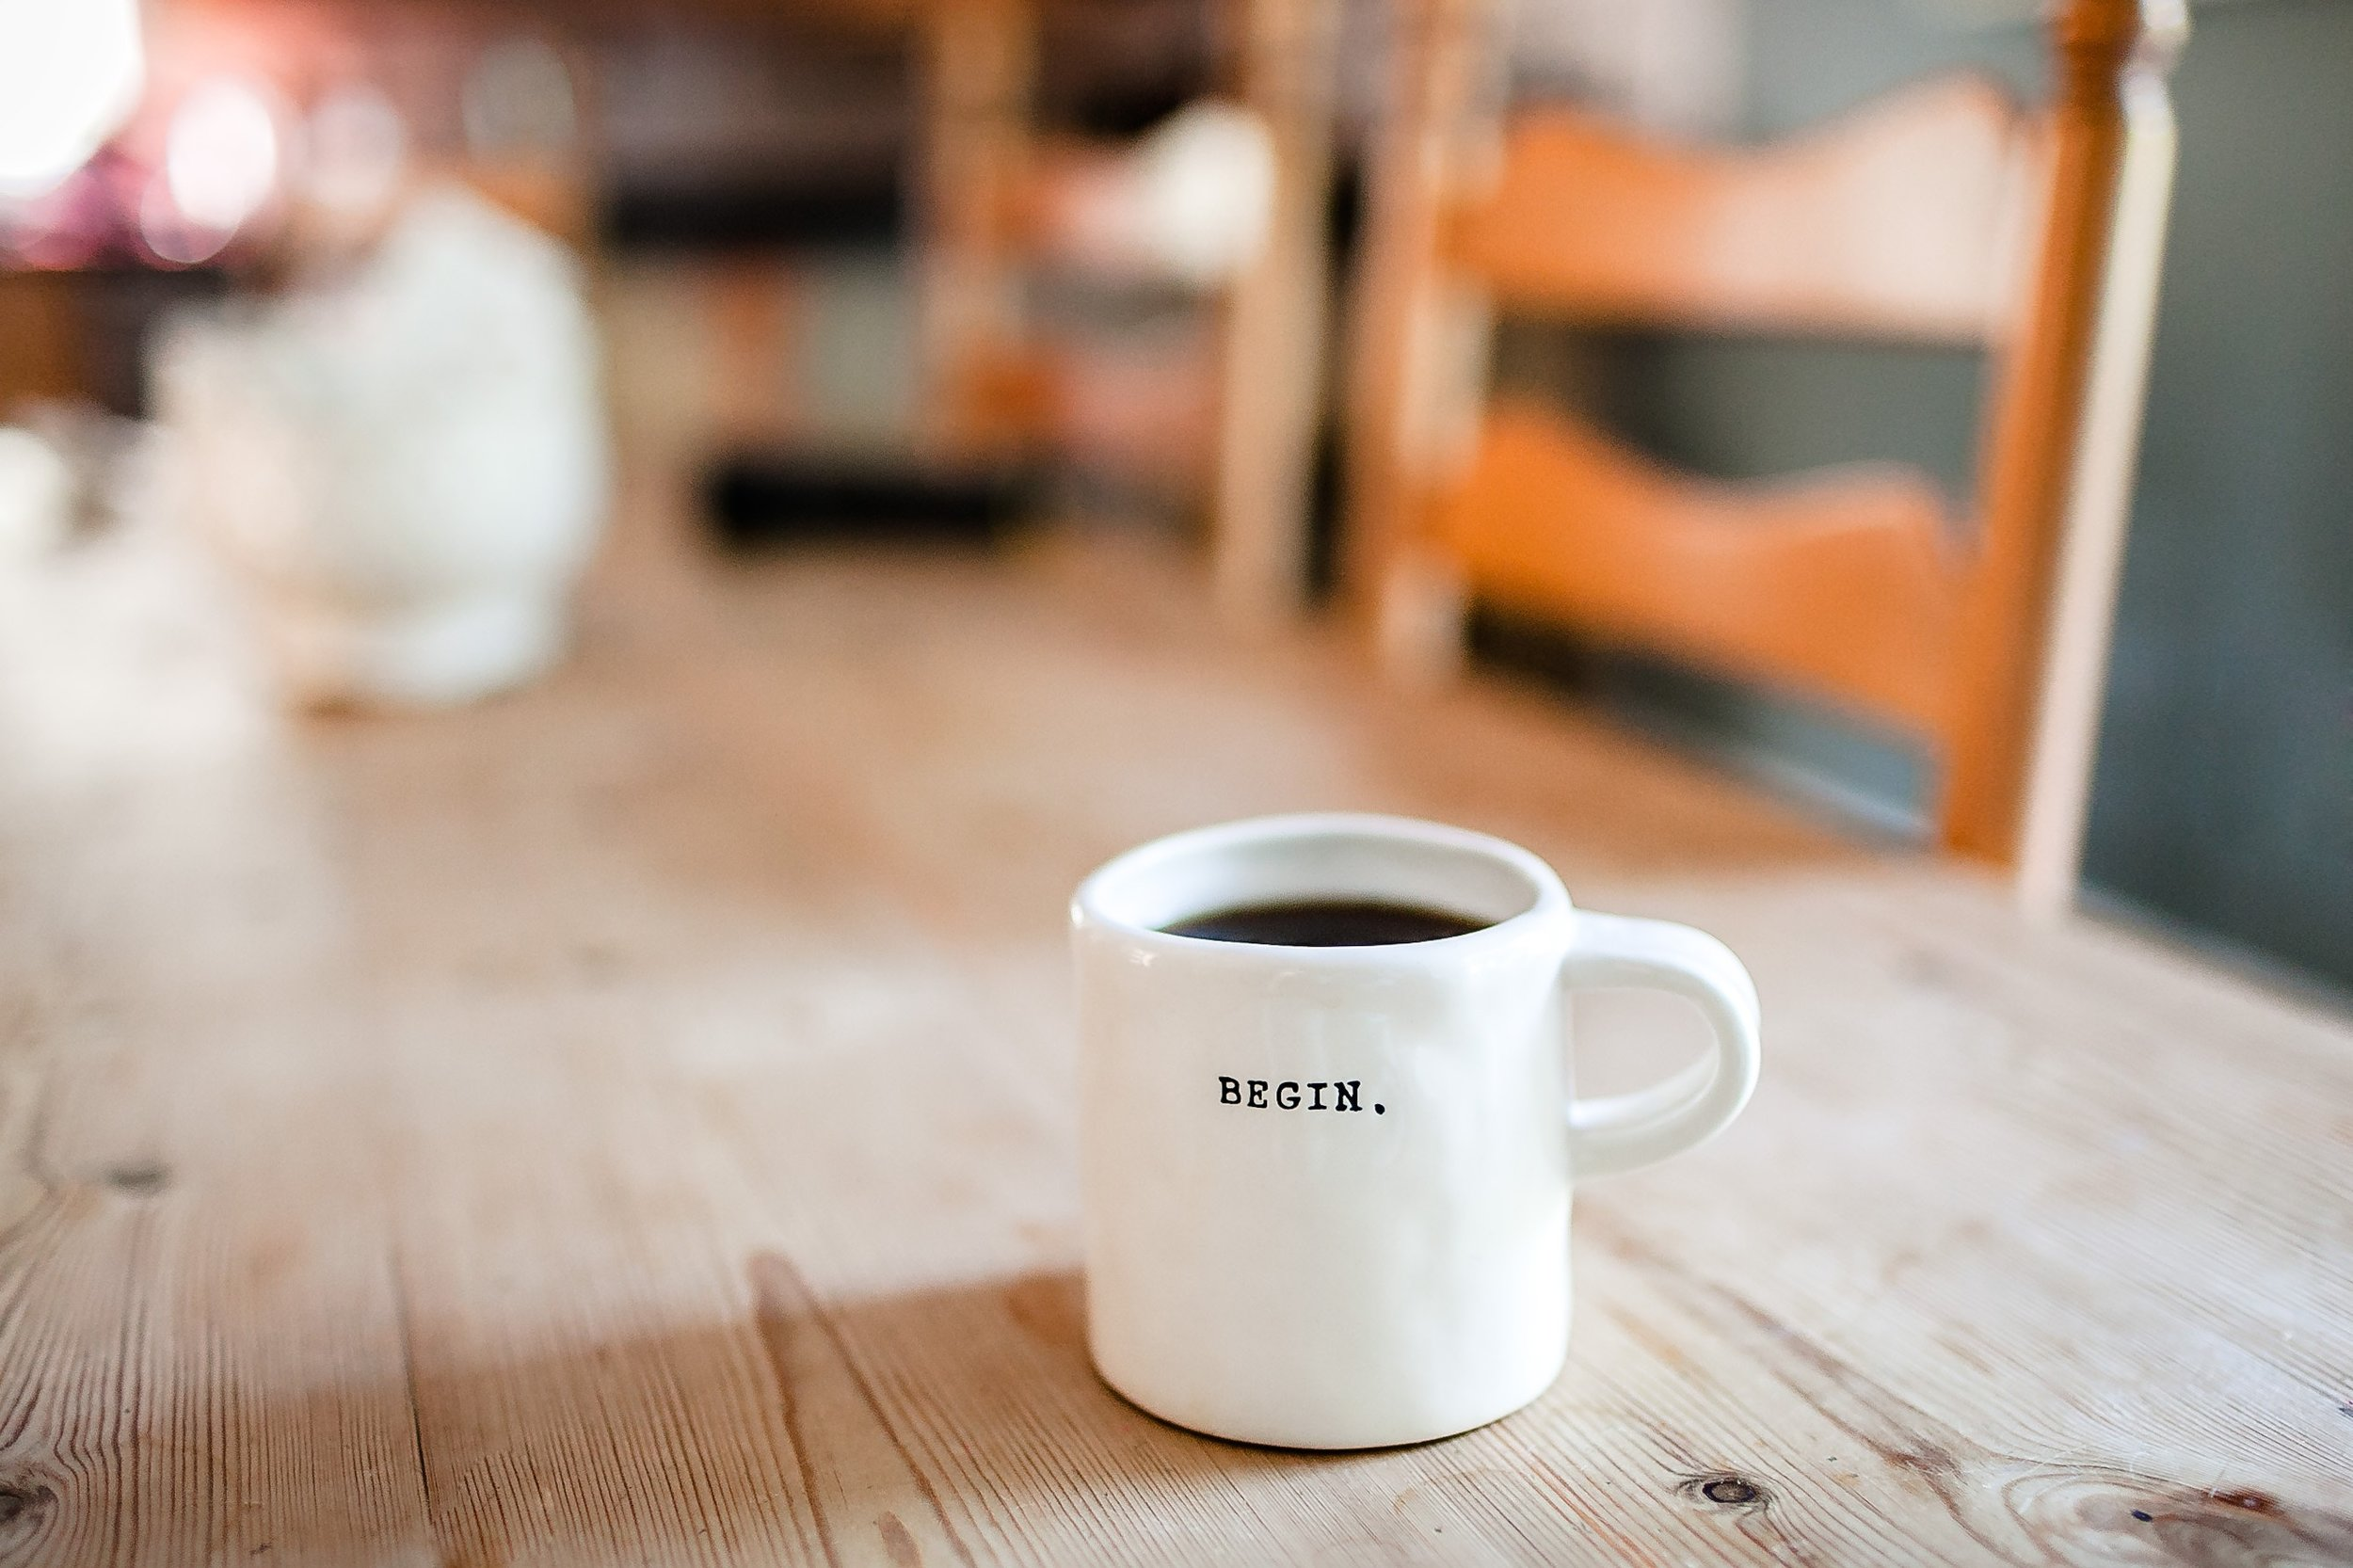 Using a blog to reach your audience is like sitting down and having a cup of coffee with them. Photo credit: Danielle Macinnes